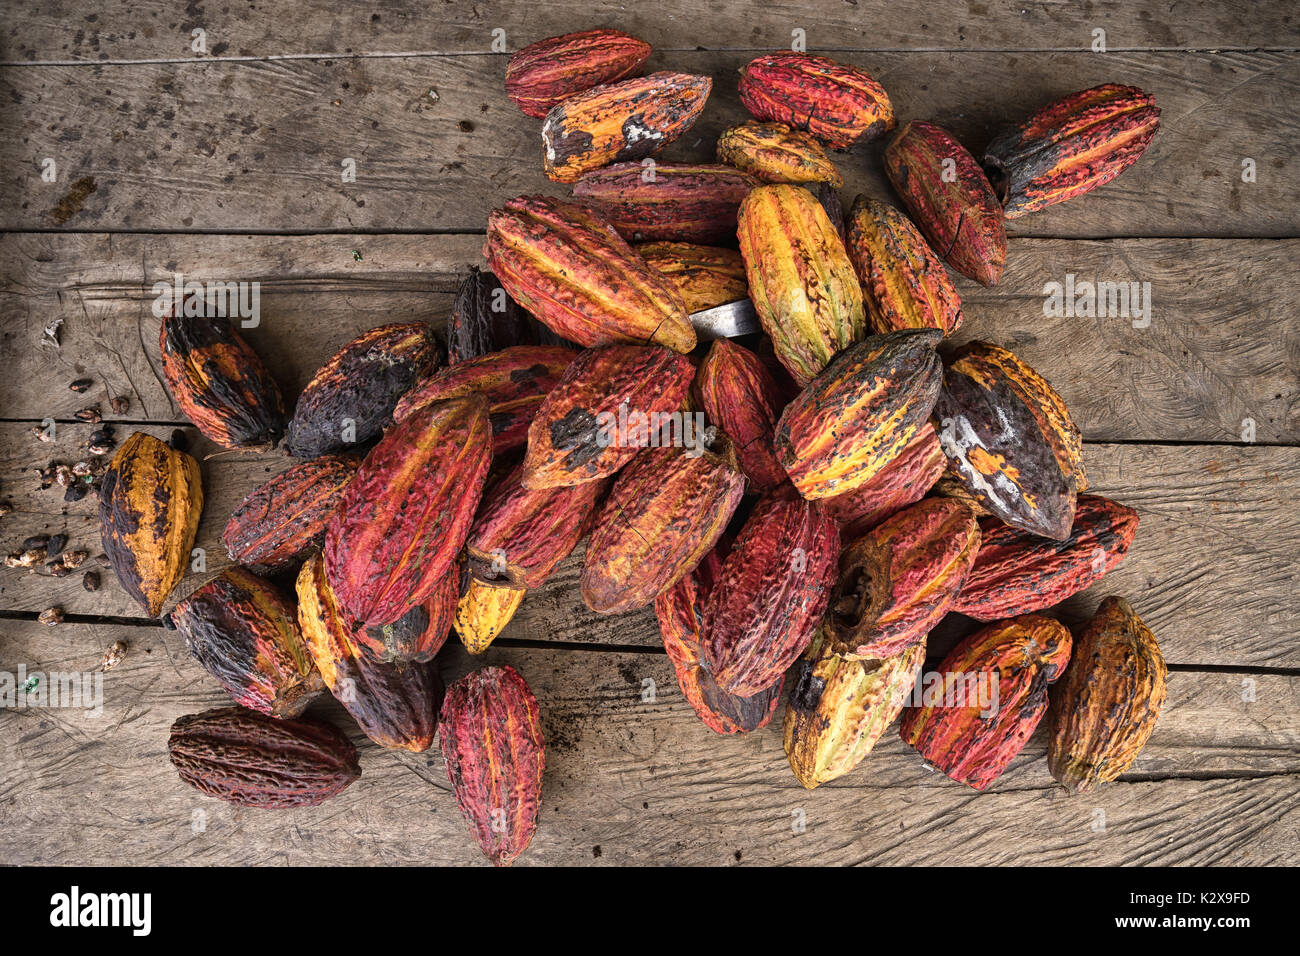 whole cocoa pods in the Amazon area of Ecuador - Stock Image